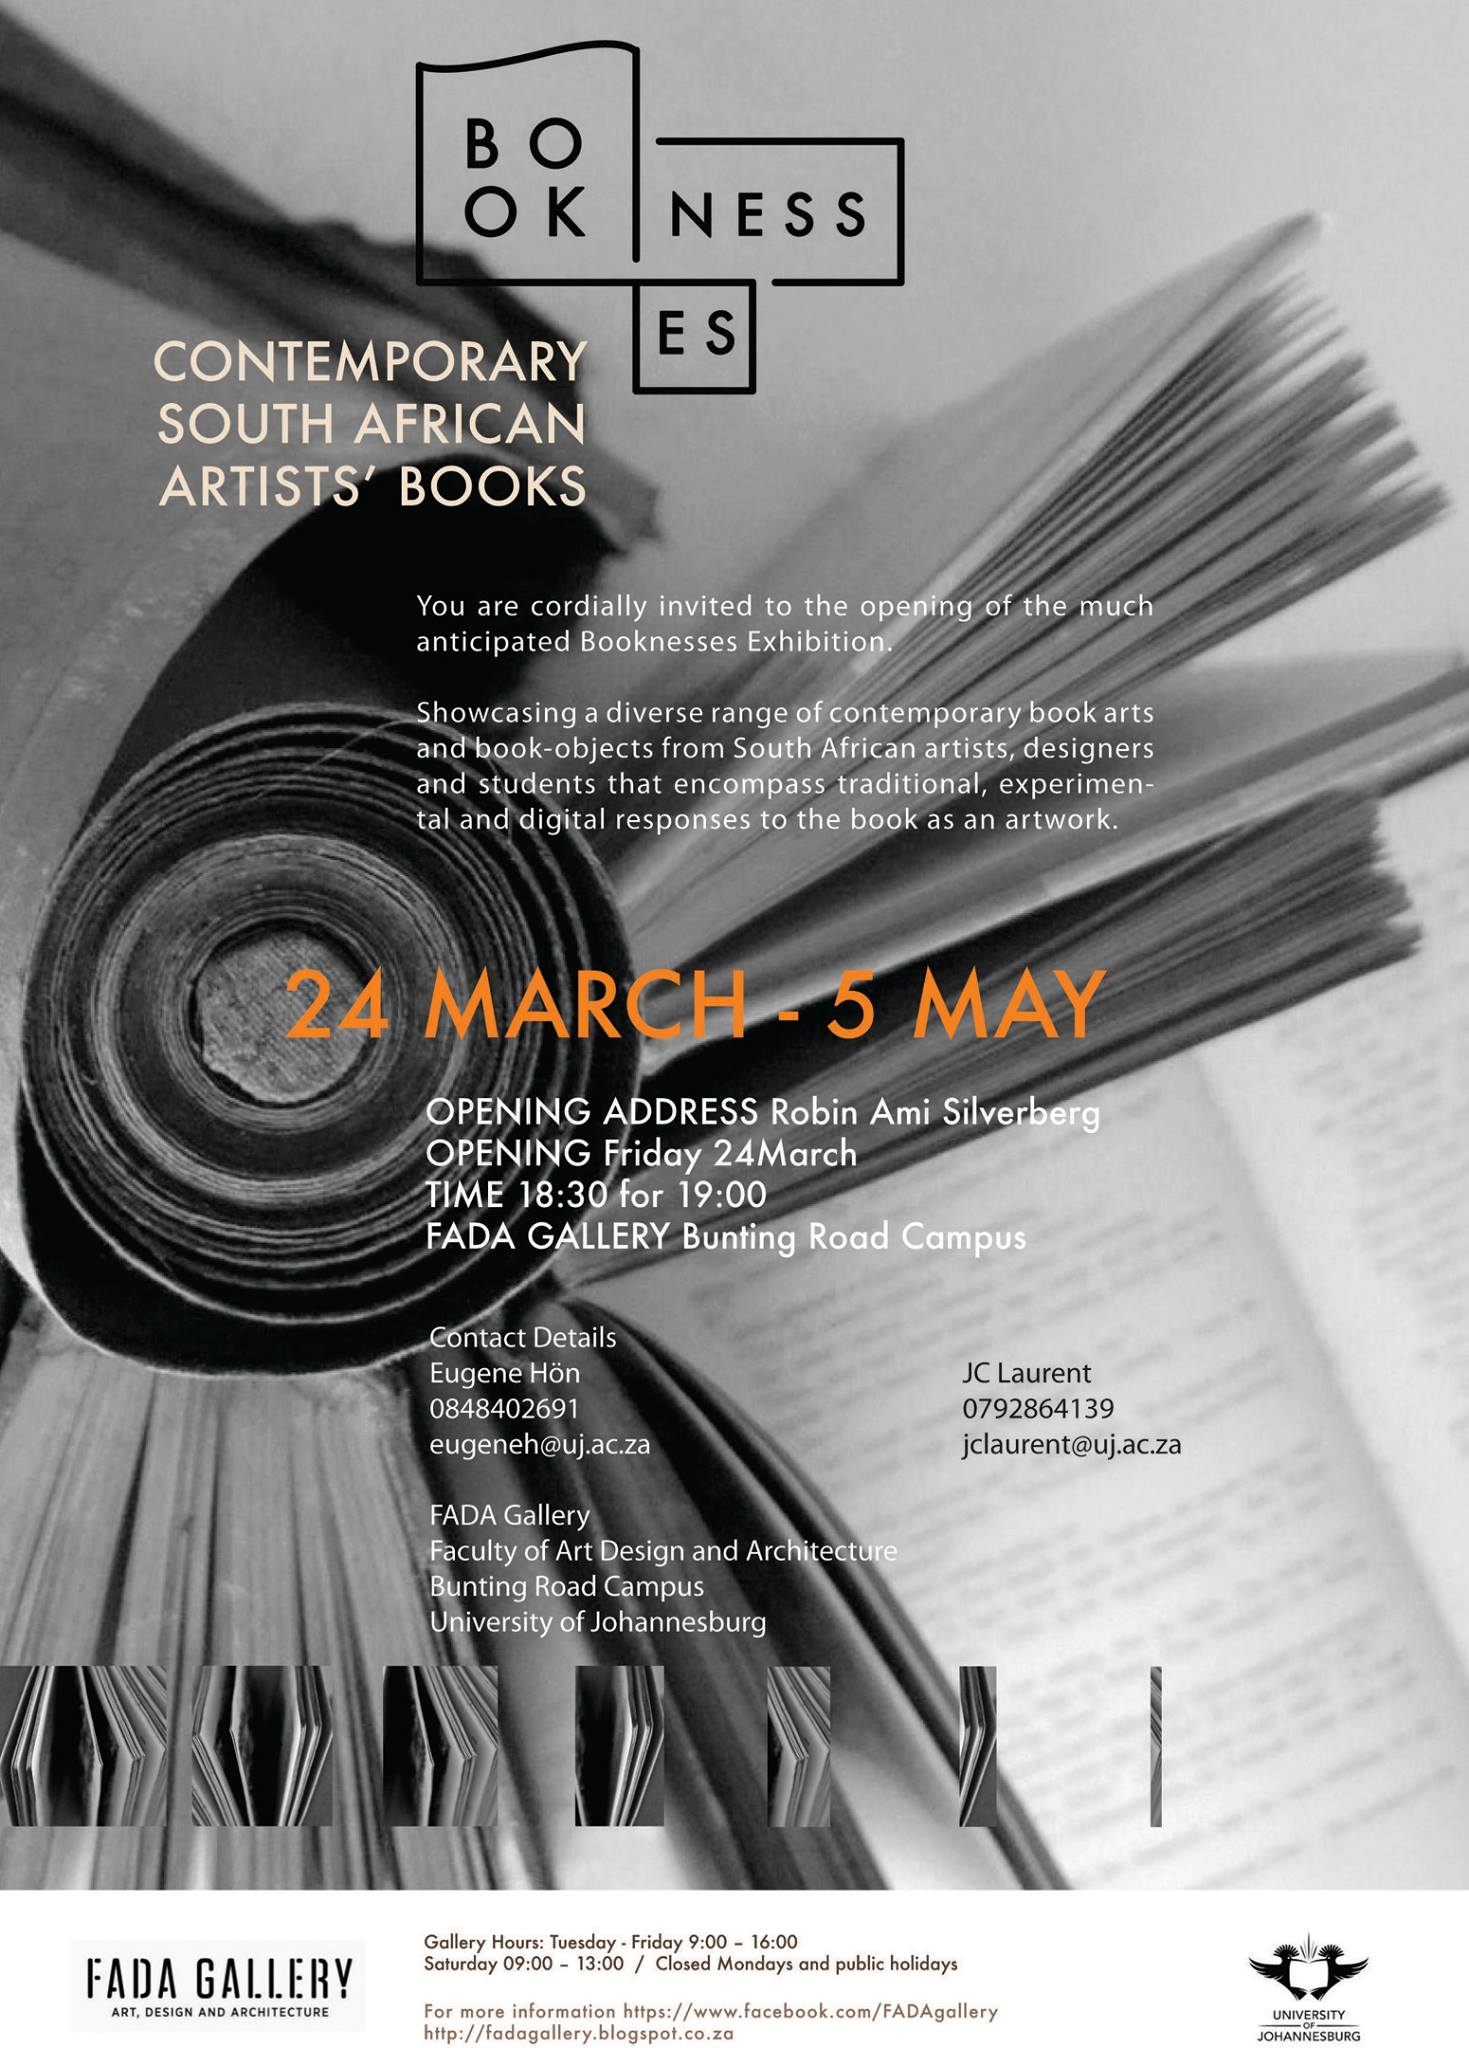 Click the image for a view of: Booknesses: Contemporary South African Artists' Books exhibition - FADA Gallery until 5 May